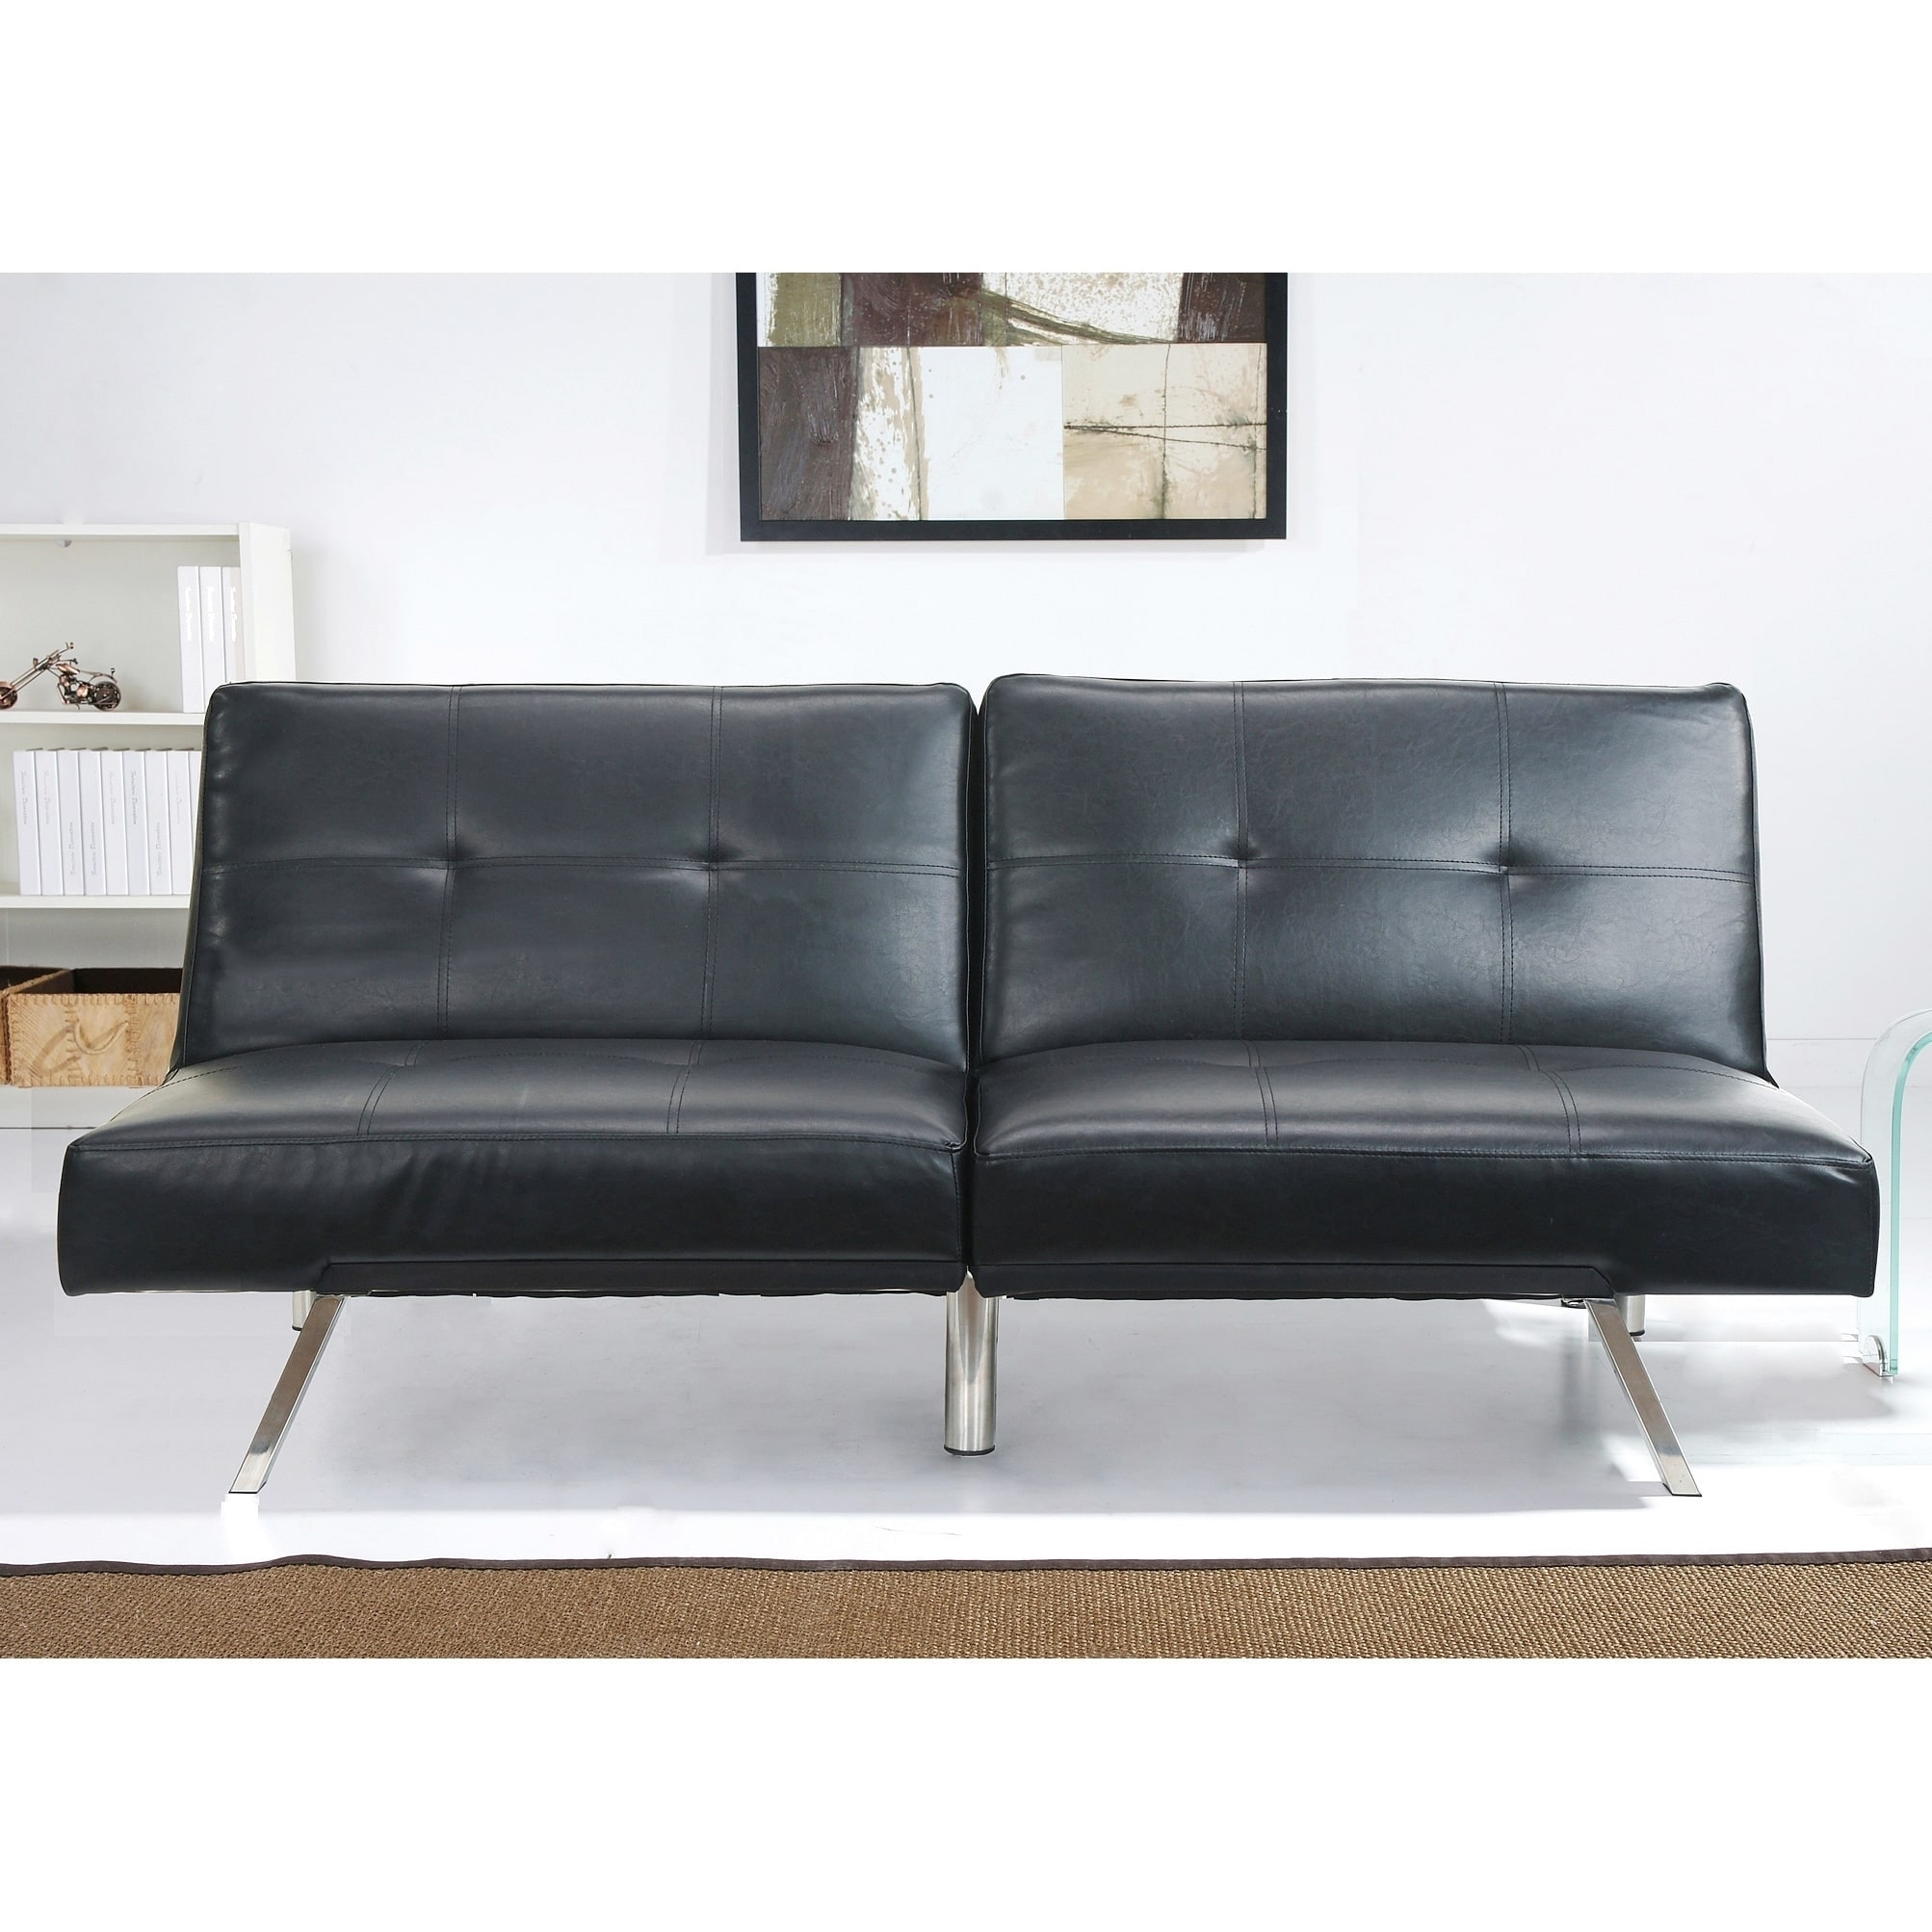 Abbyson Aspen Black Bonded Leather Foldable Futon Sleeper Sofa On Free Shipping Today Com 9043818